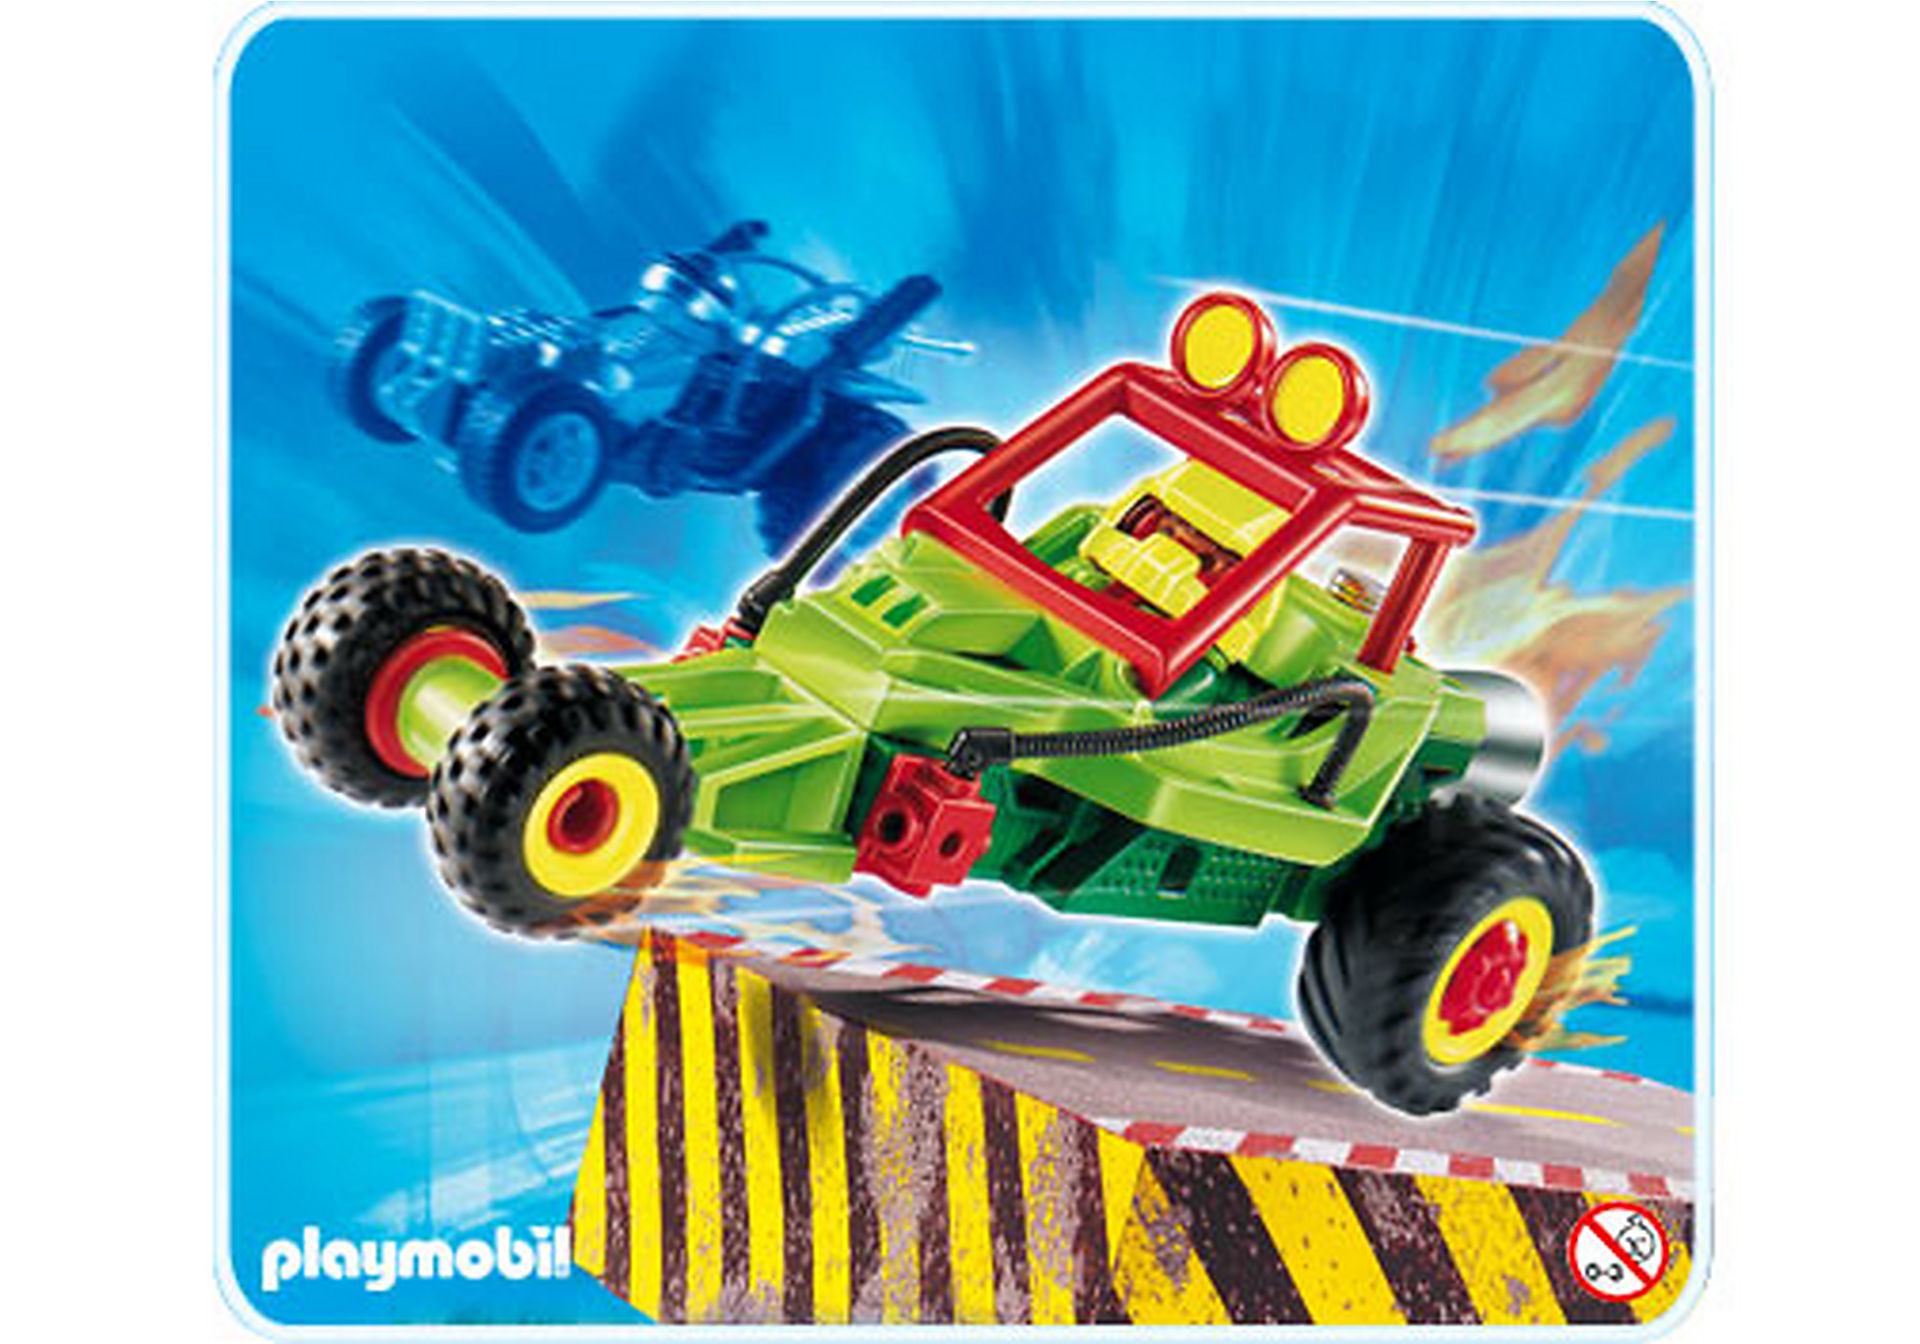 http://media.playmobil.com/i/playmobil/4183-A_product_detail/Pilote avec voiture transformable verte